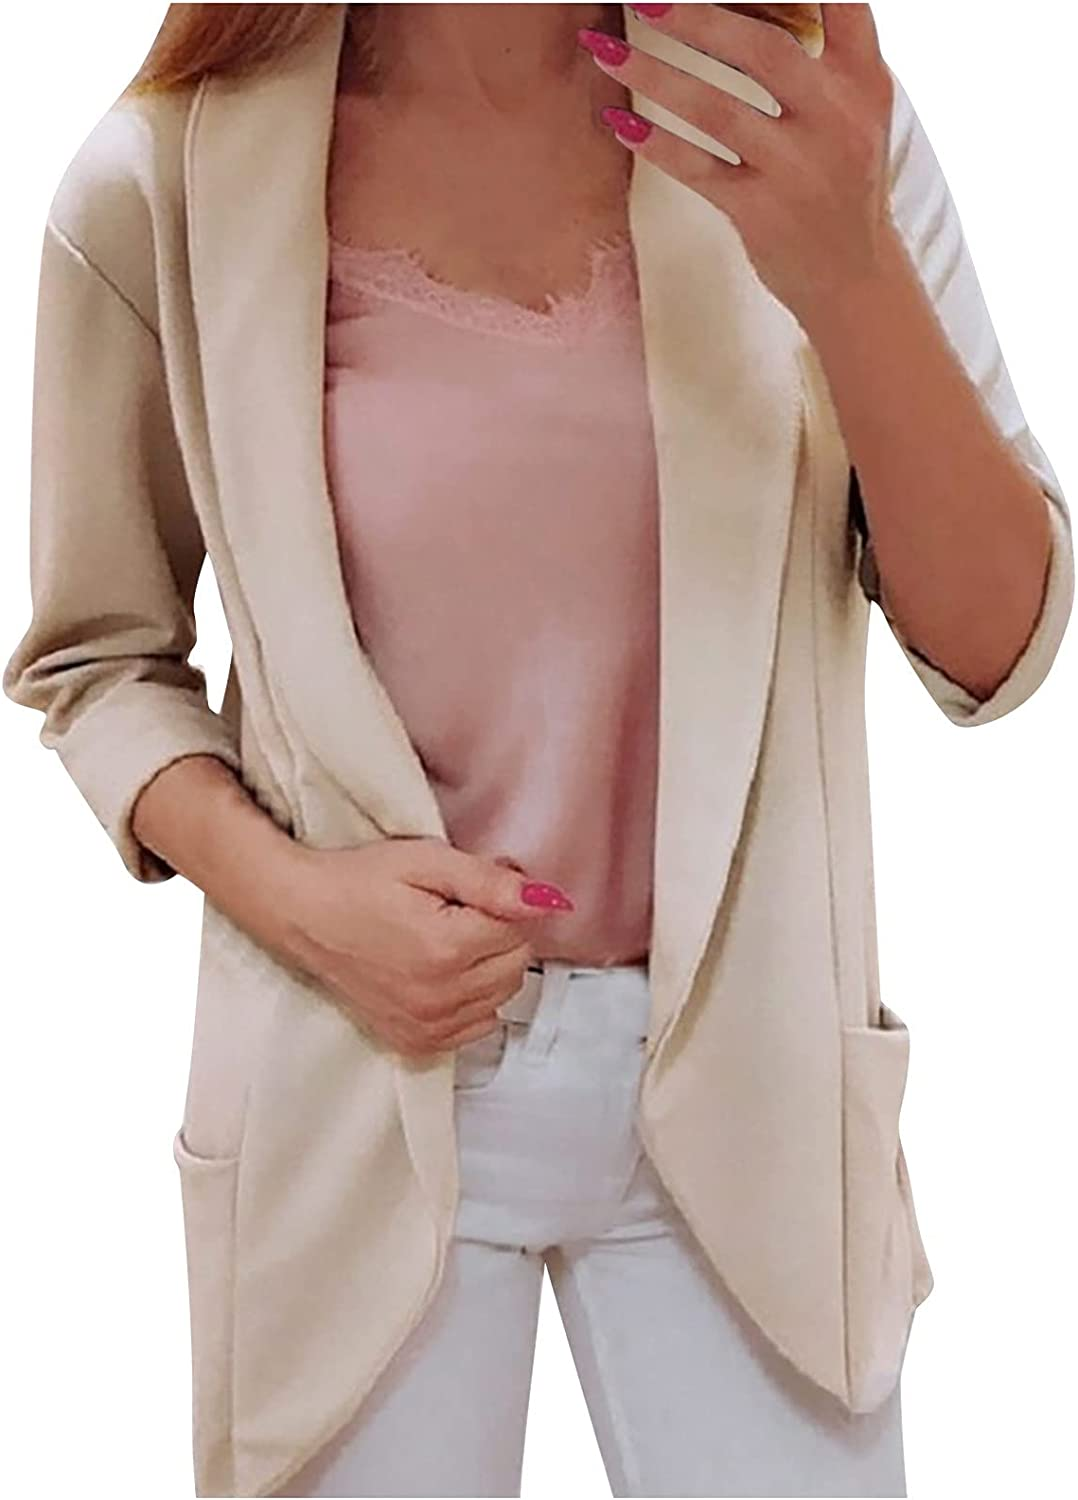 Women Casual Blazers Open Front 3/4 Sleeve Ruched Cardigan Solid Color Long-Sleeved Top LightweightThinworkOffice Suit Jacket